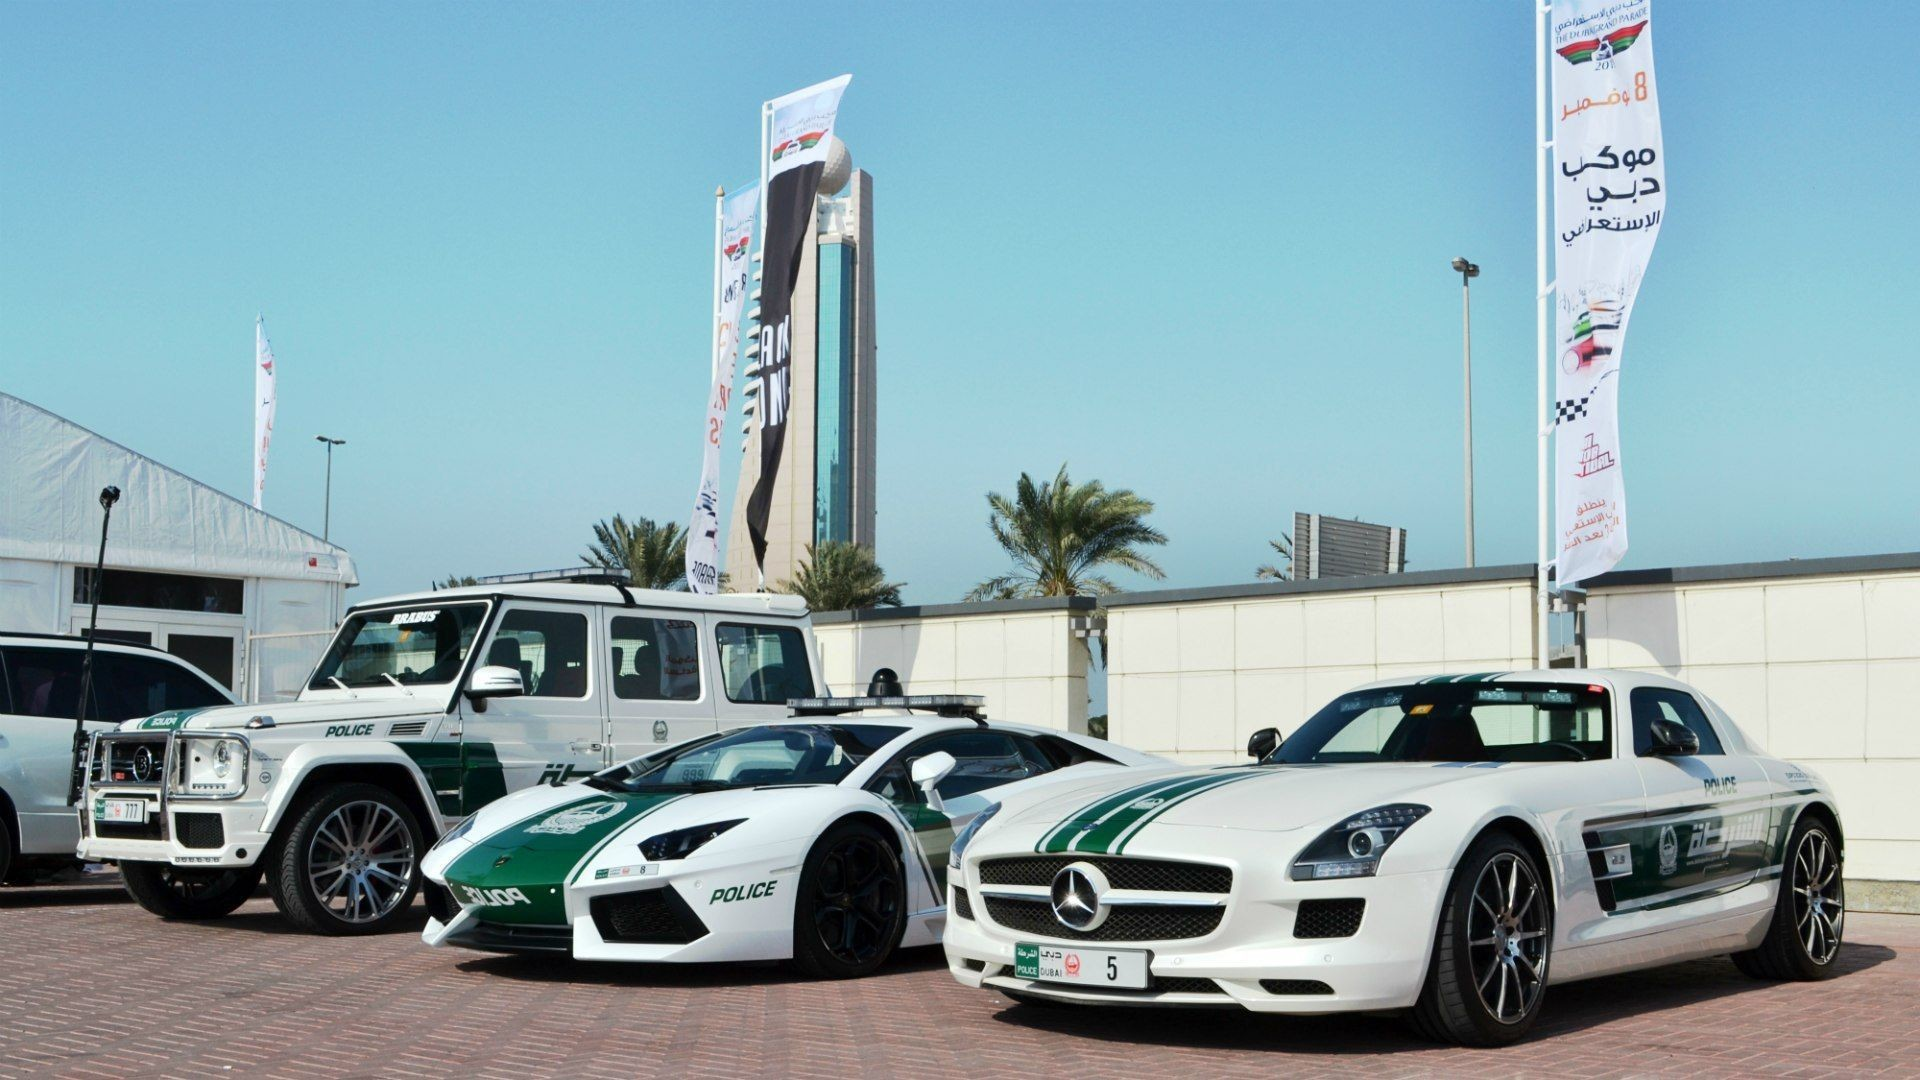 Dubai Police Cars wallpapers and images – wallpapers, pictures, photos